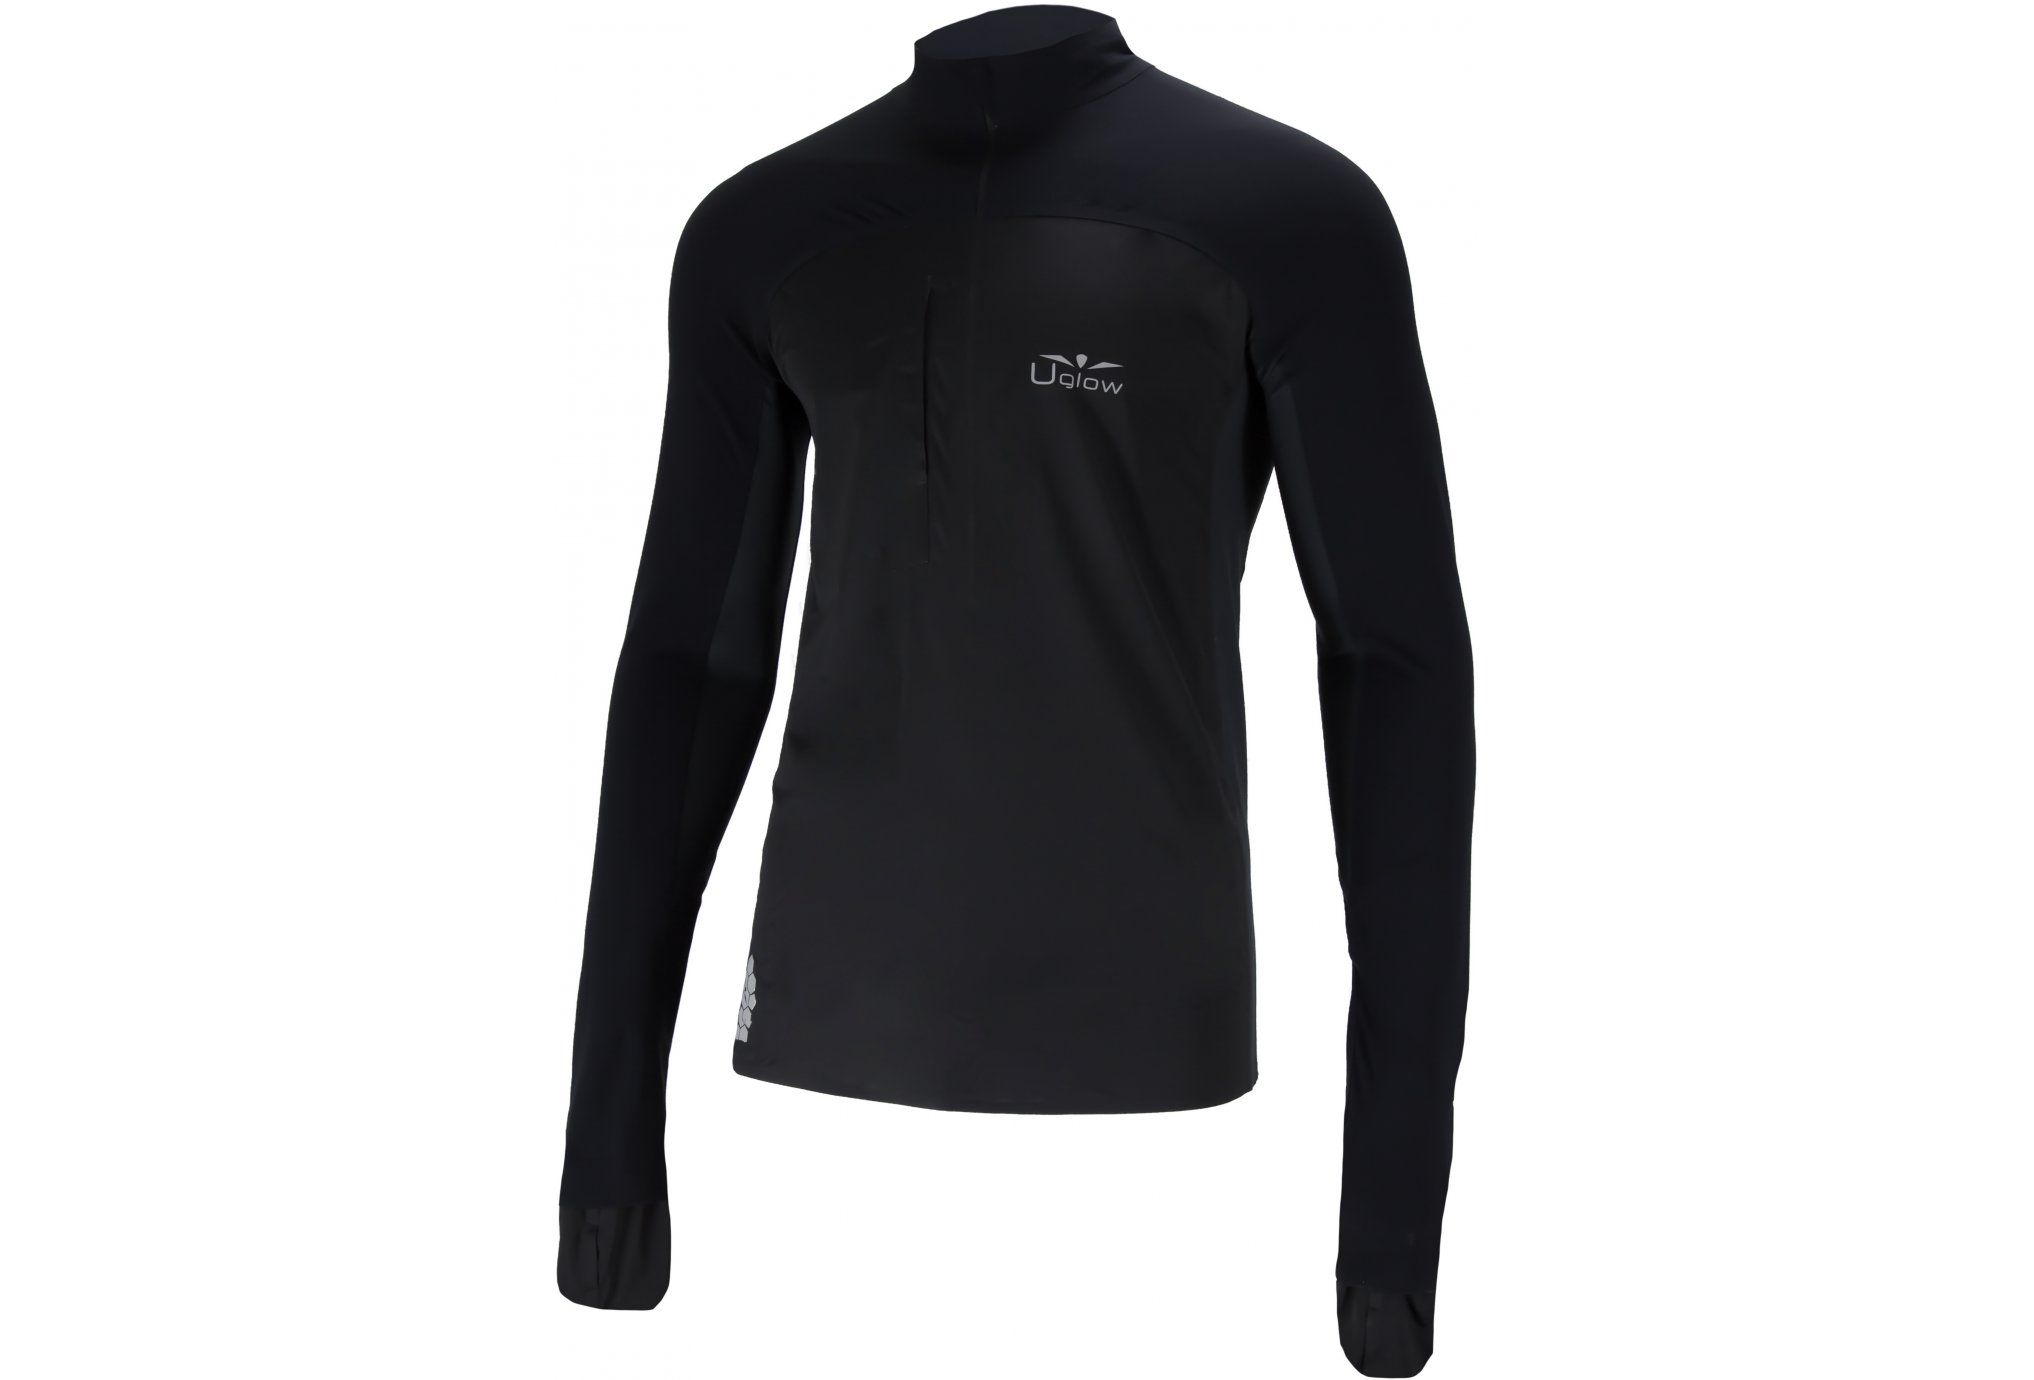 Uglow 3/4 Zip Membrane M vêtement running homme